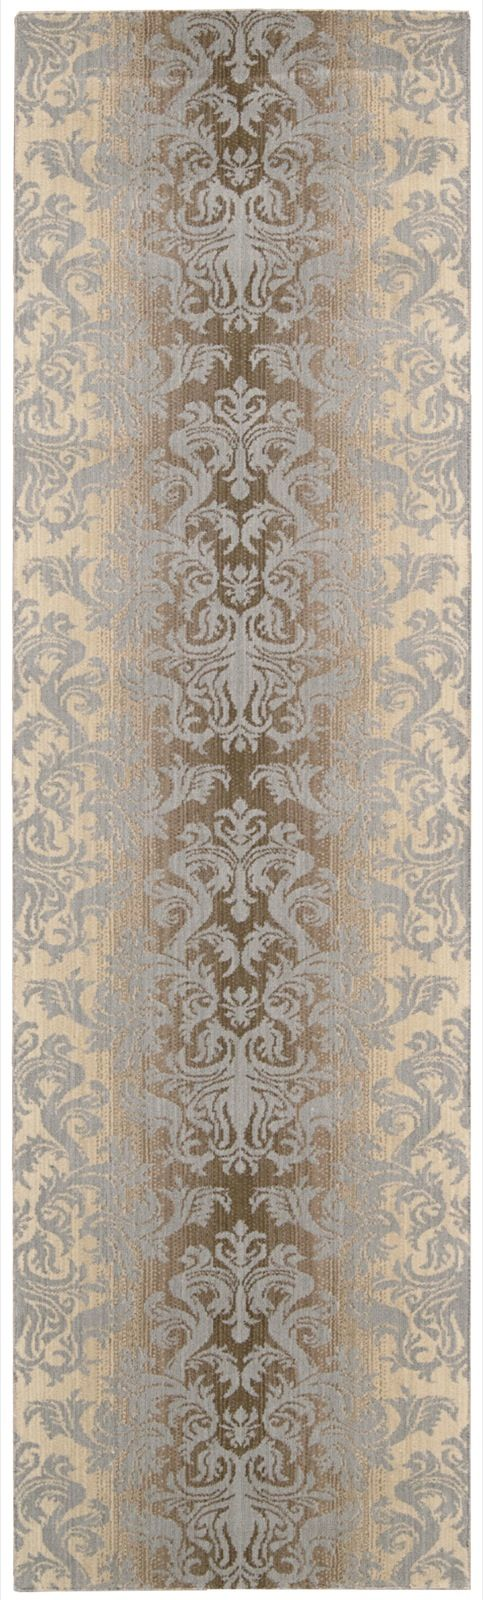 nourison riviera transitional area rug collection